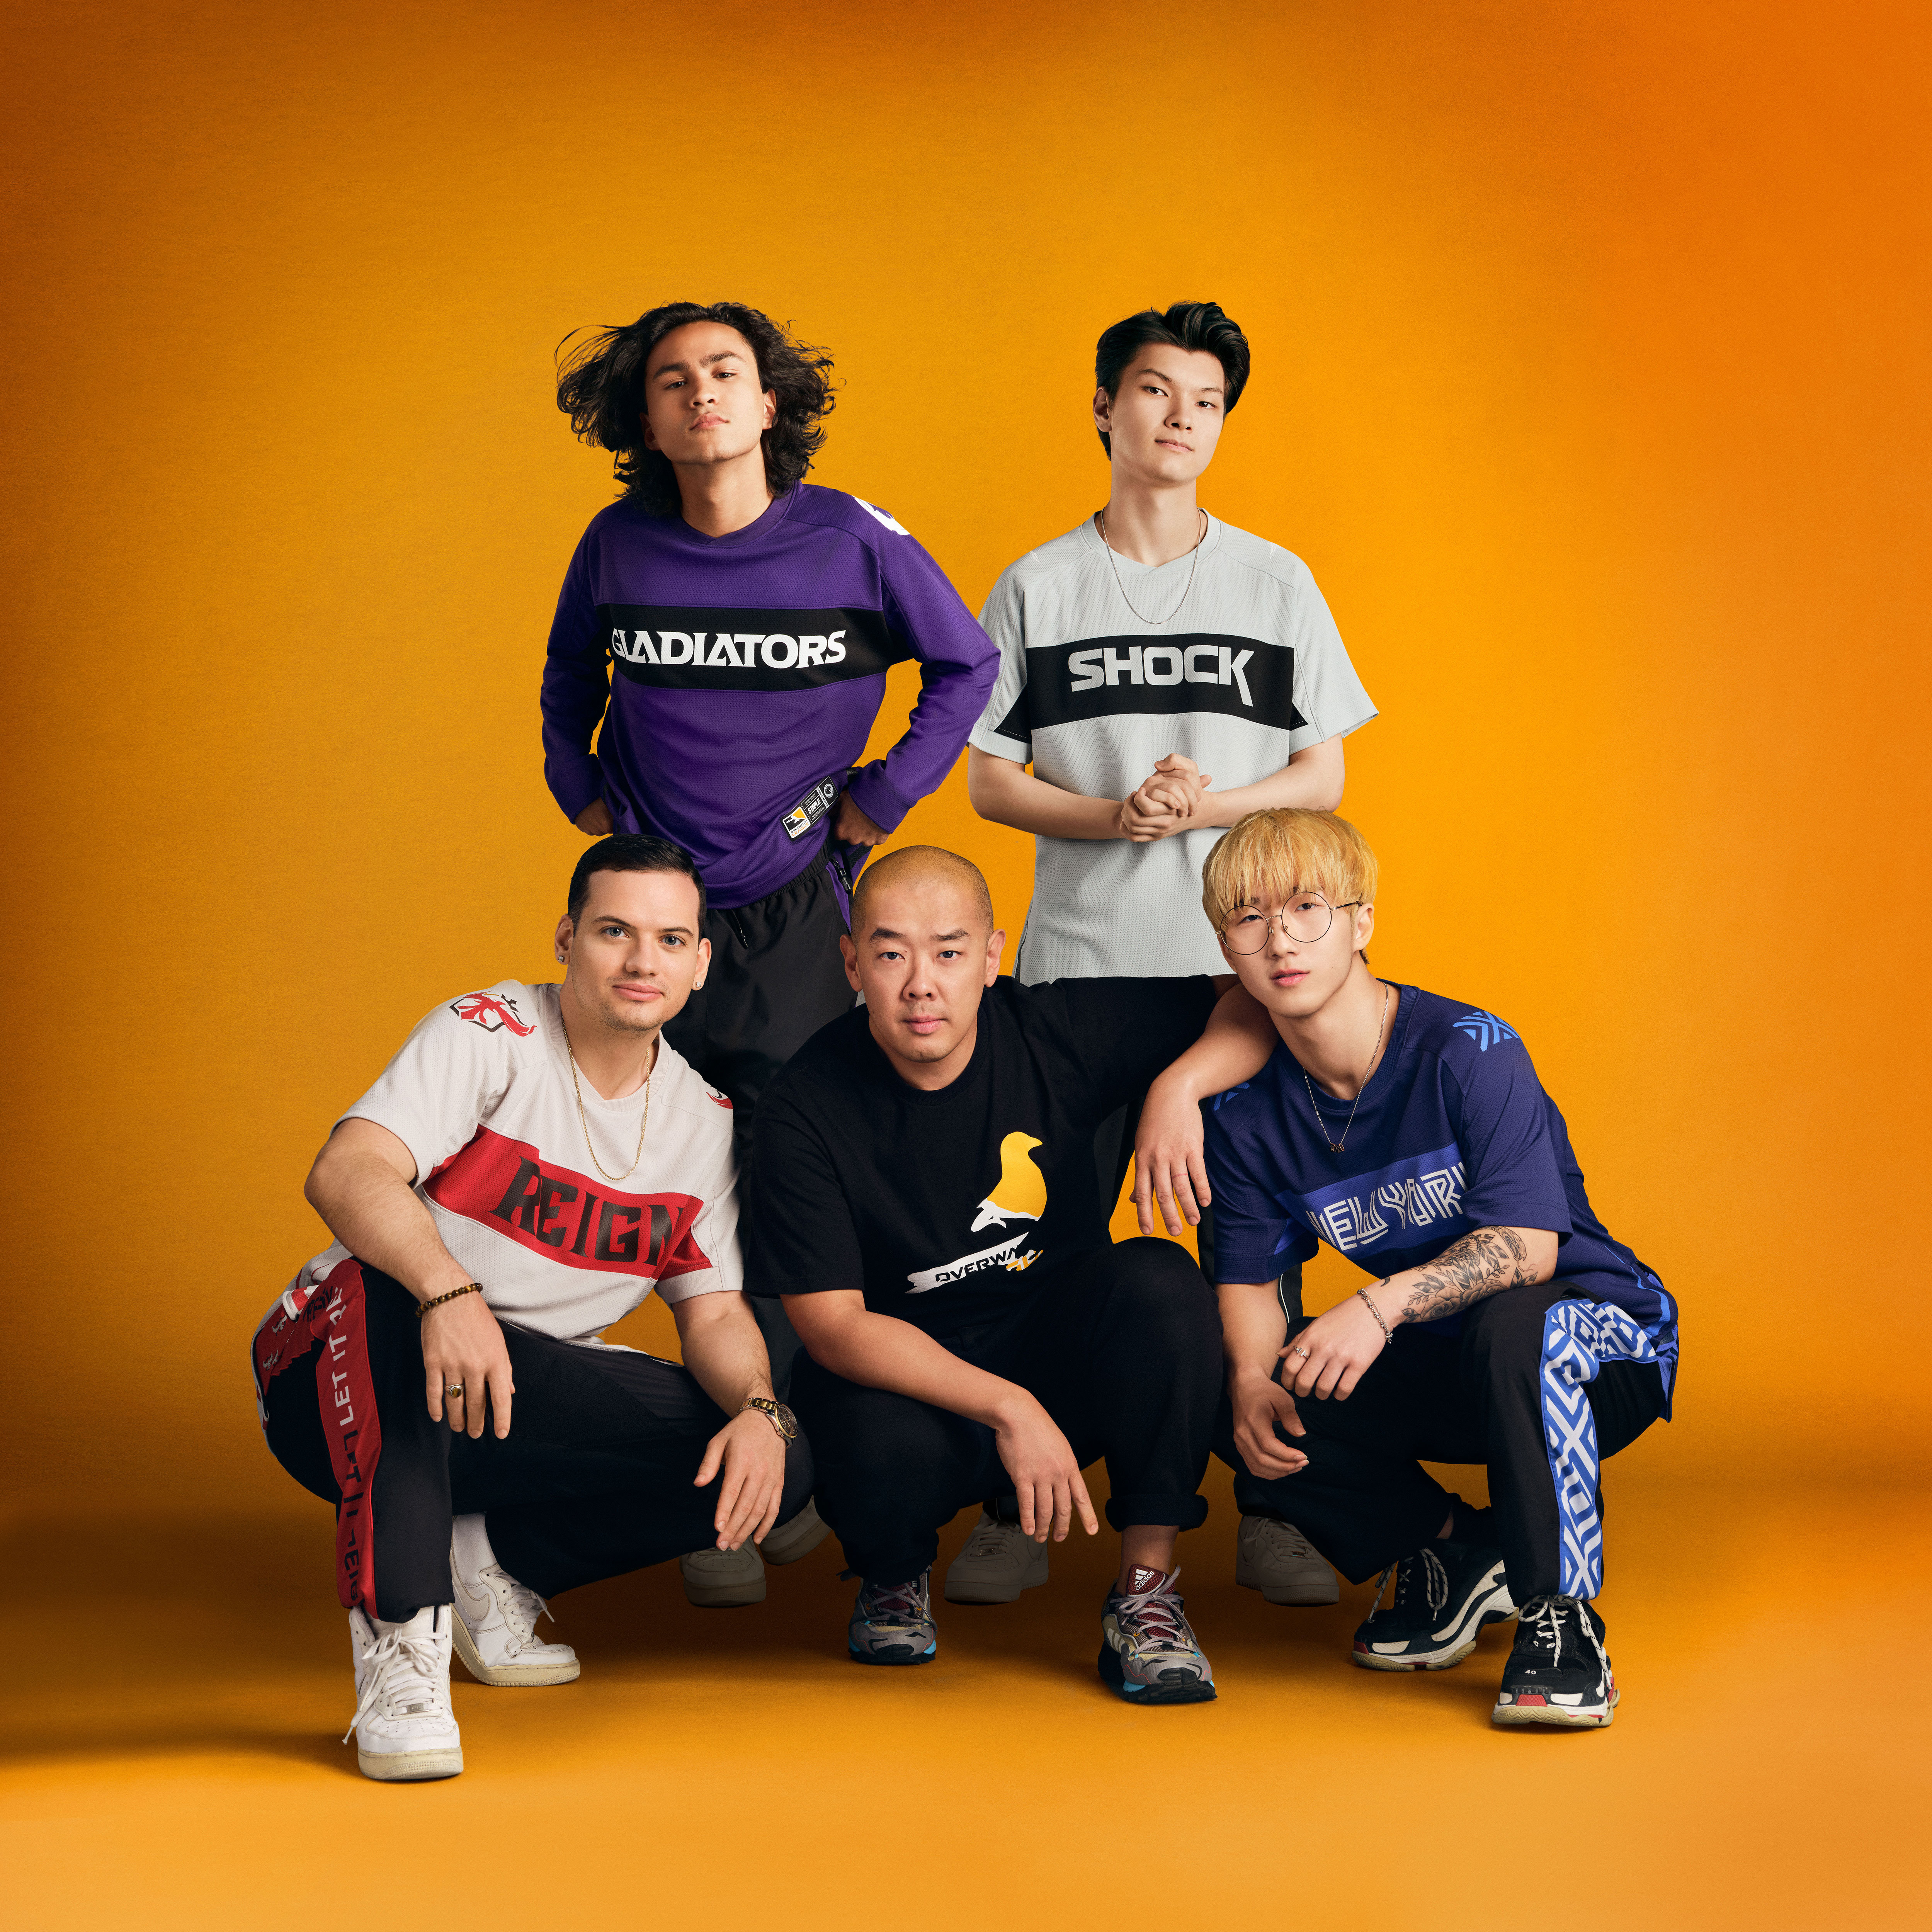 Alegrarse enlace aguacero  Legendary Streetwear Designer Jeff Staple Teams up With the Overwatch  League™ to Create First-of-its-kind Esports Kit | Business Wire